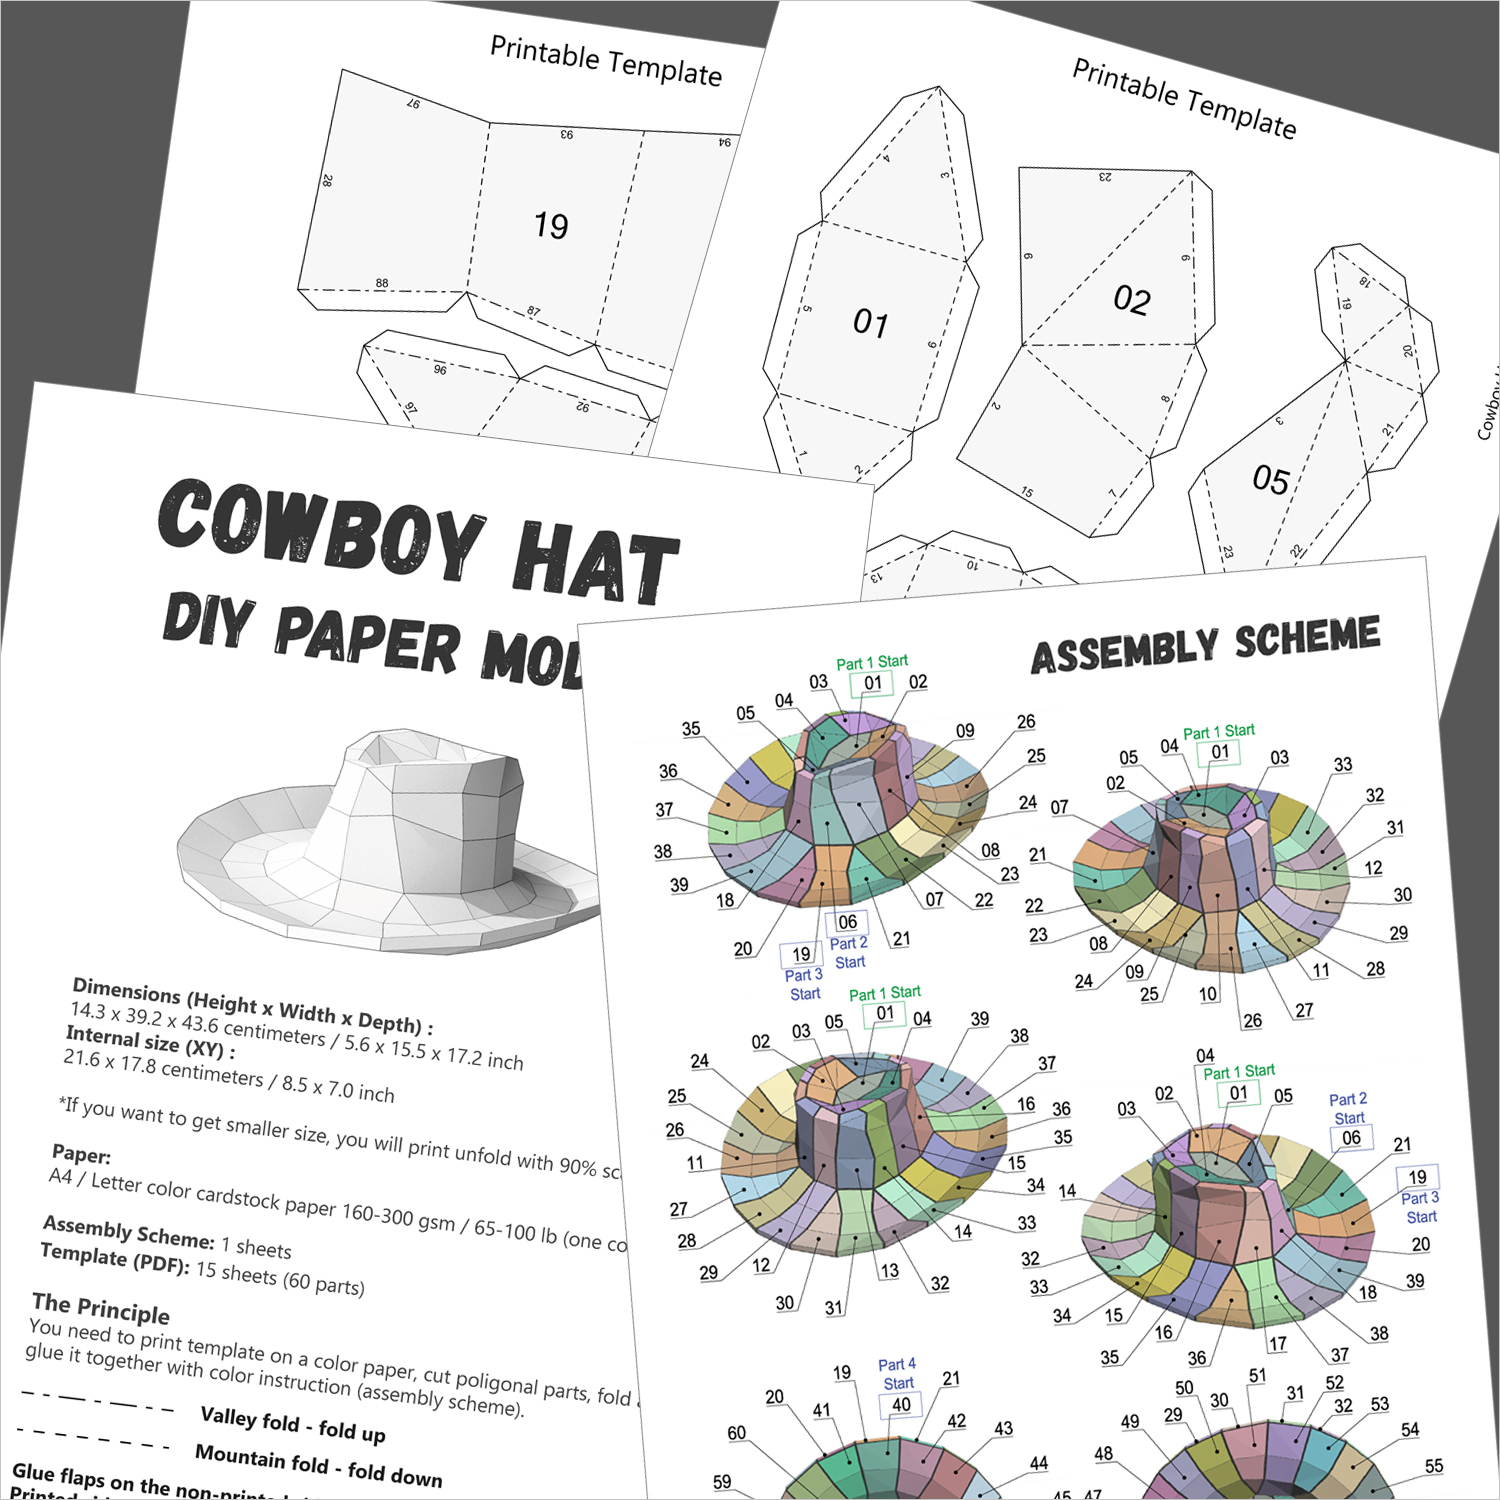 Cowboy Hat Papercraft for Wearing or Wall Decor, DIY Gift - VitaliStore